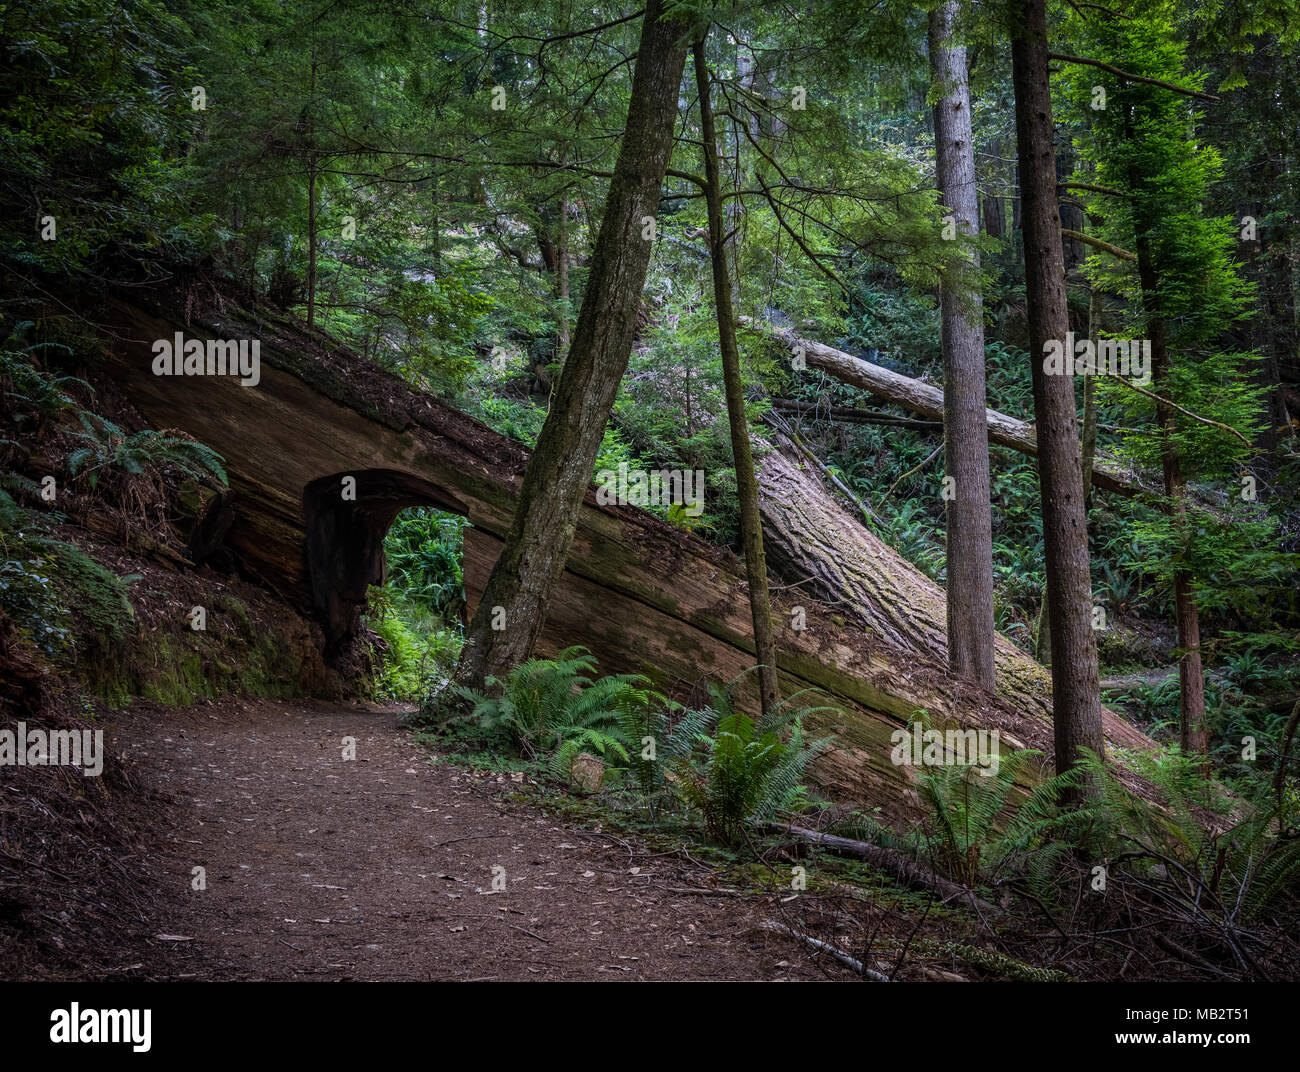 Walking Tunnel Through Redwood Tree Trunk in Thick Forest - Stock Image